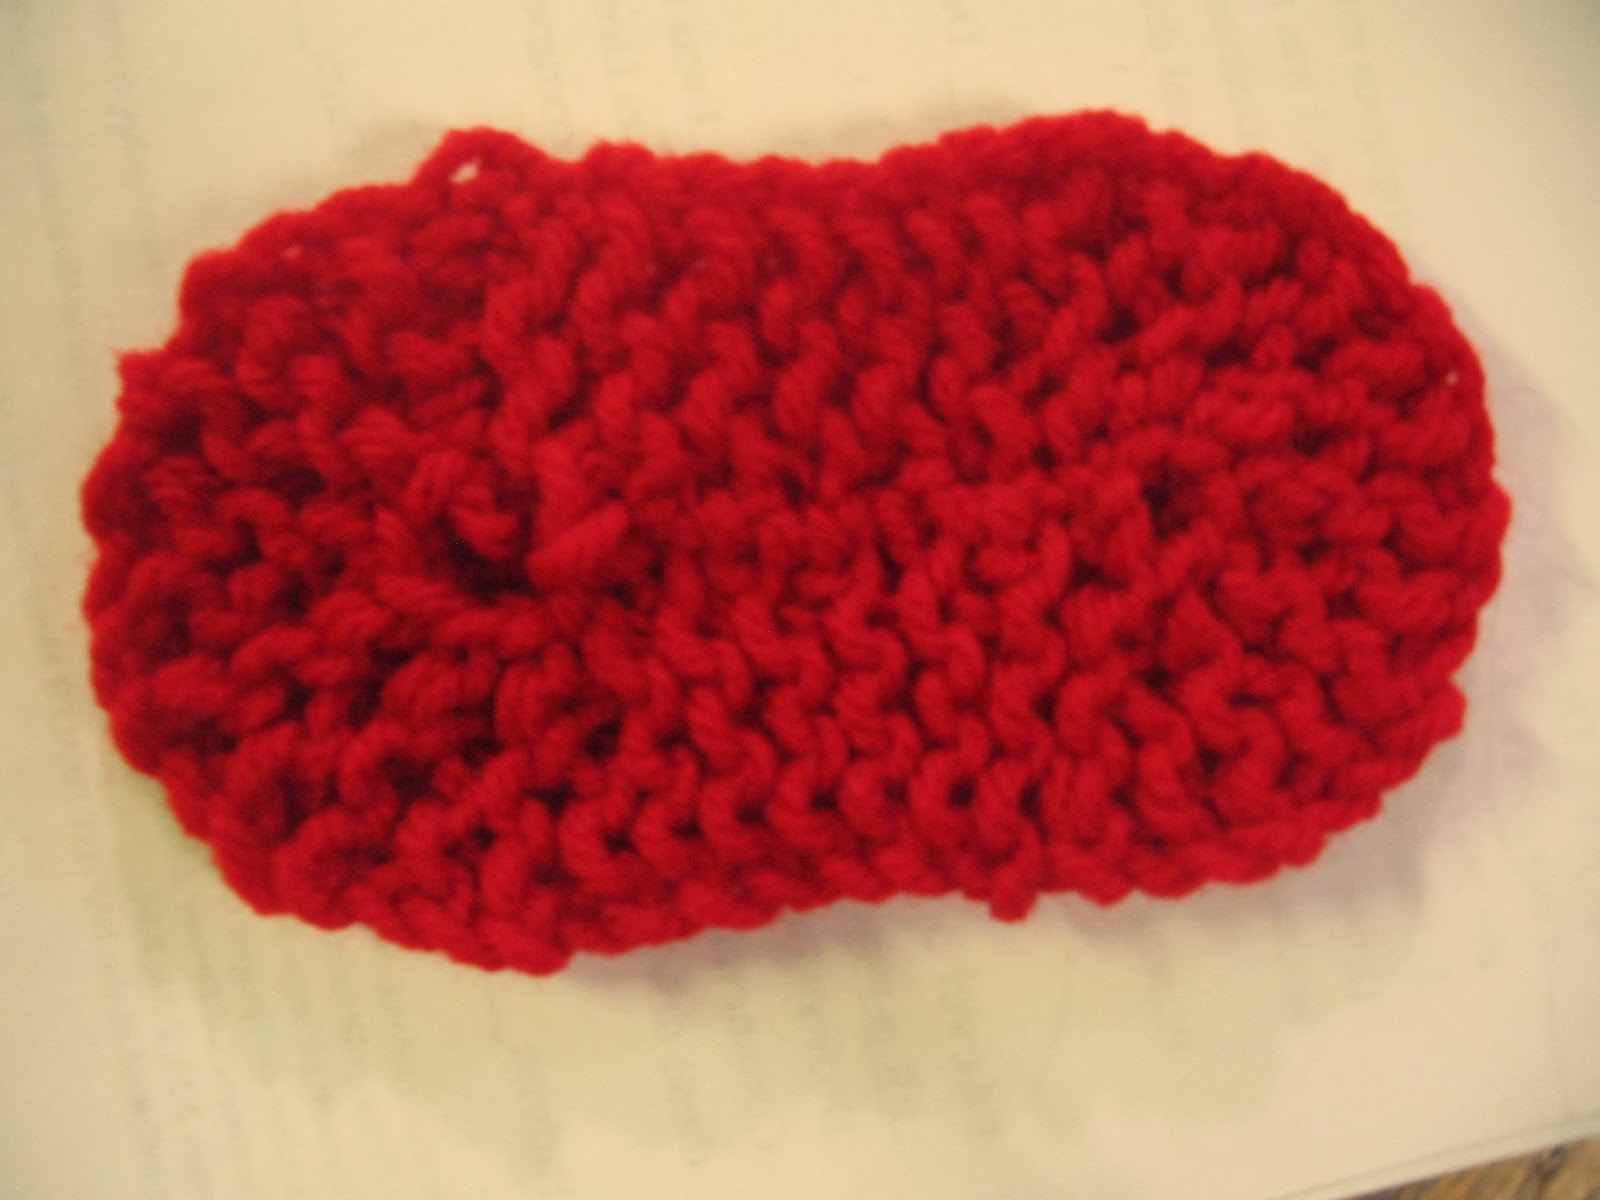 String Theory Fiber Works: Loom Knit Oval Shapes